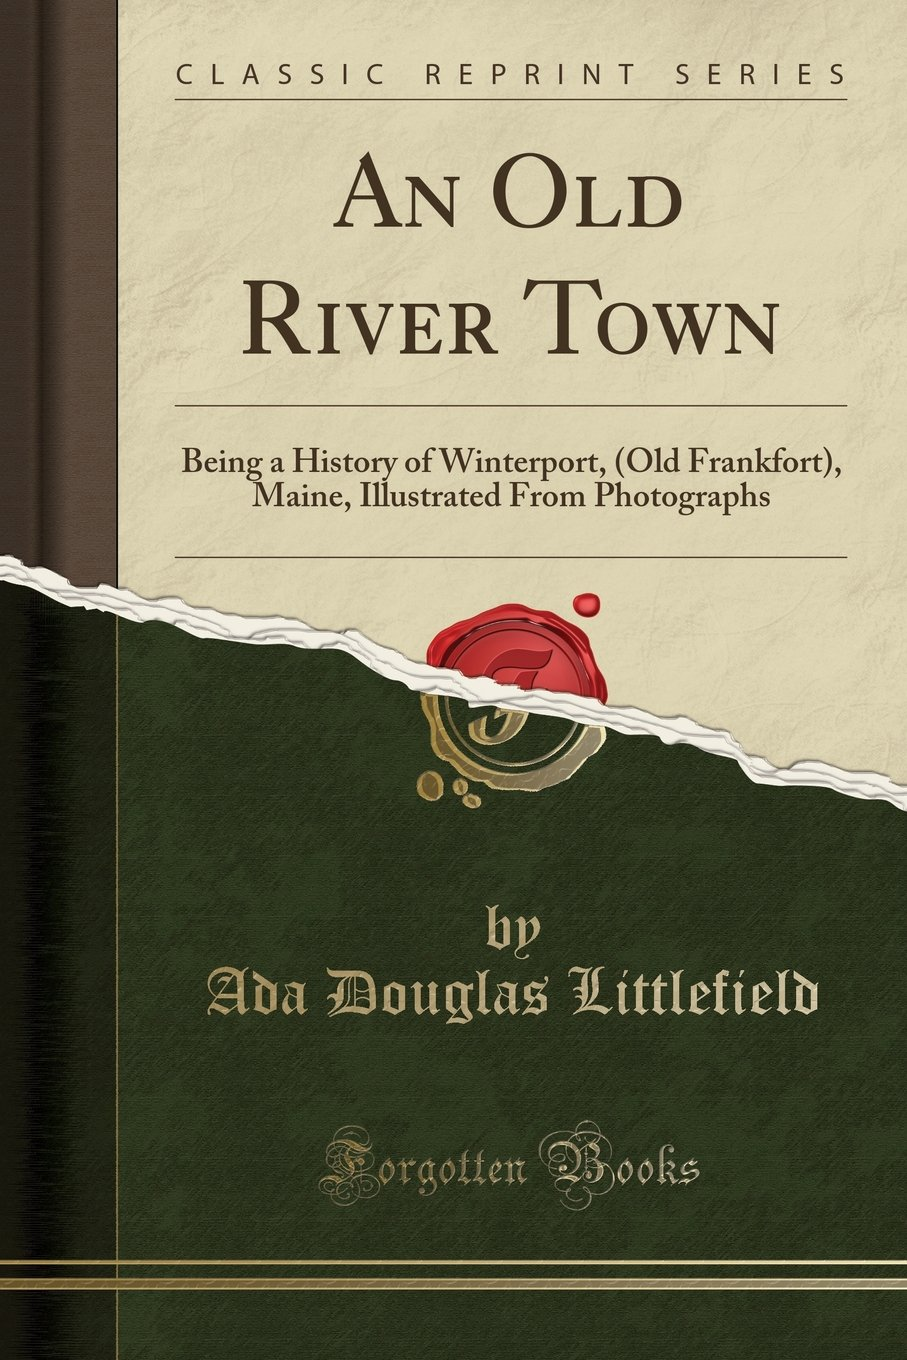 An Old River Town: Being a History of Winterport, (Old Frankfort), Maine, Illustrated From Photographs (Classic Reprint)